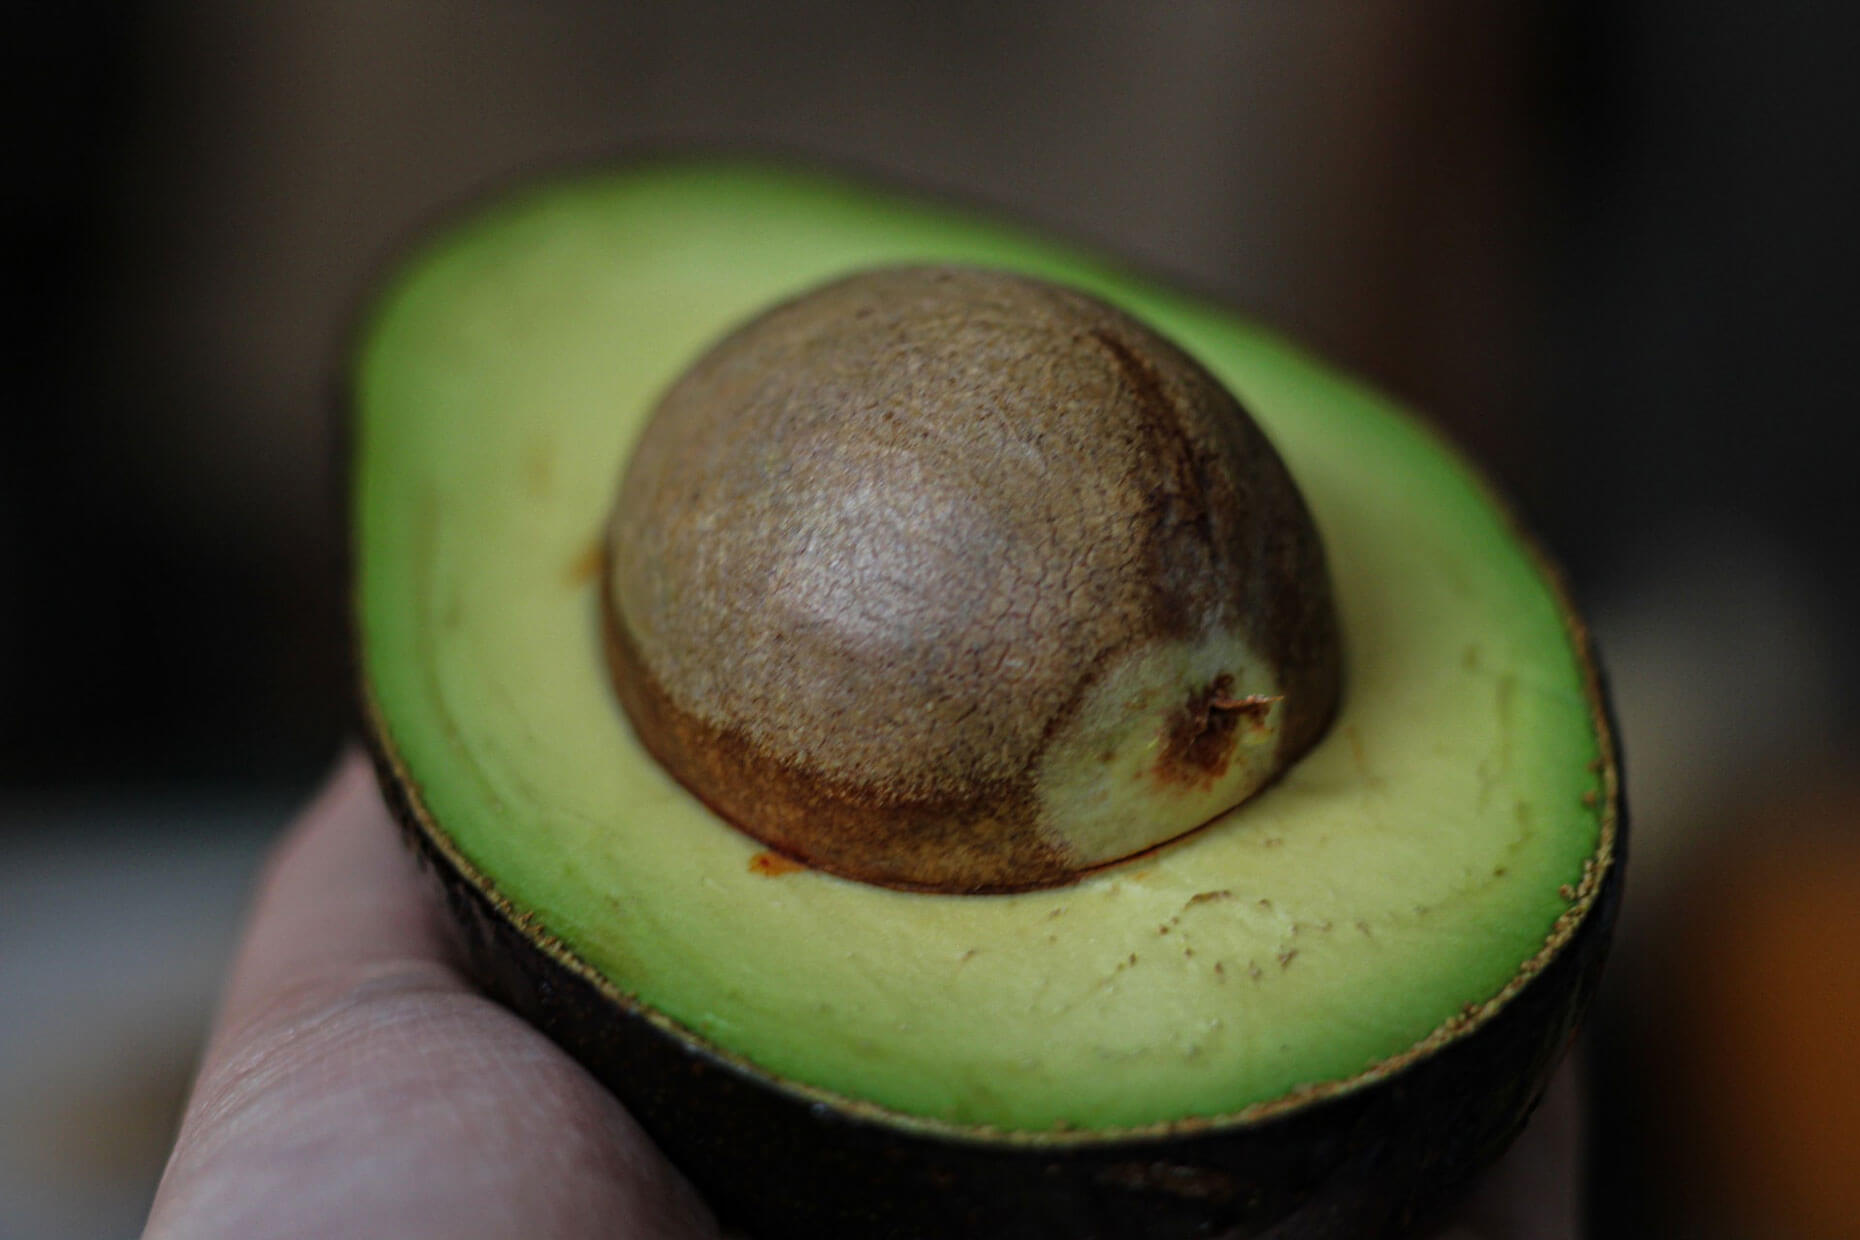 A partially obscured hand holding half an avocado with the pit still in place